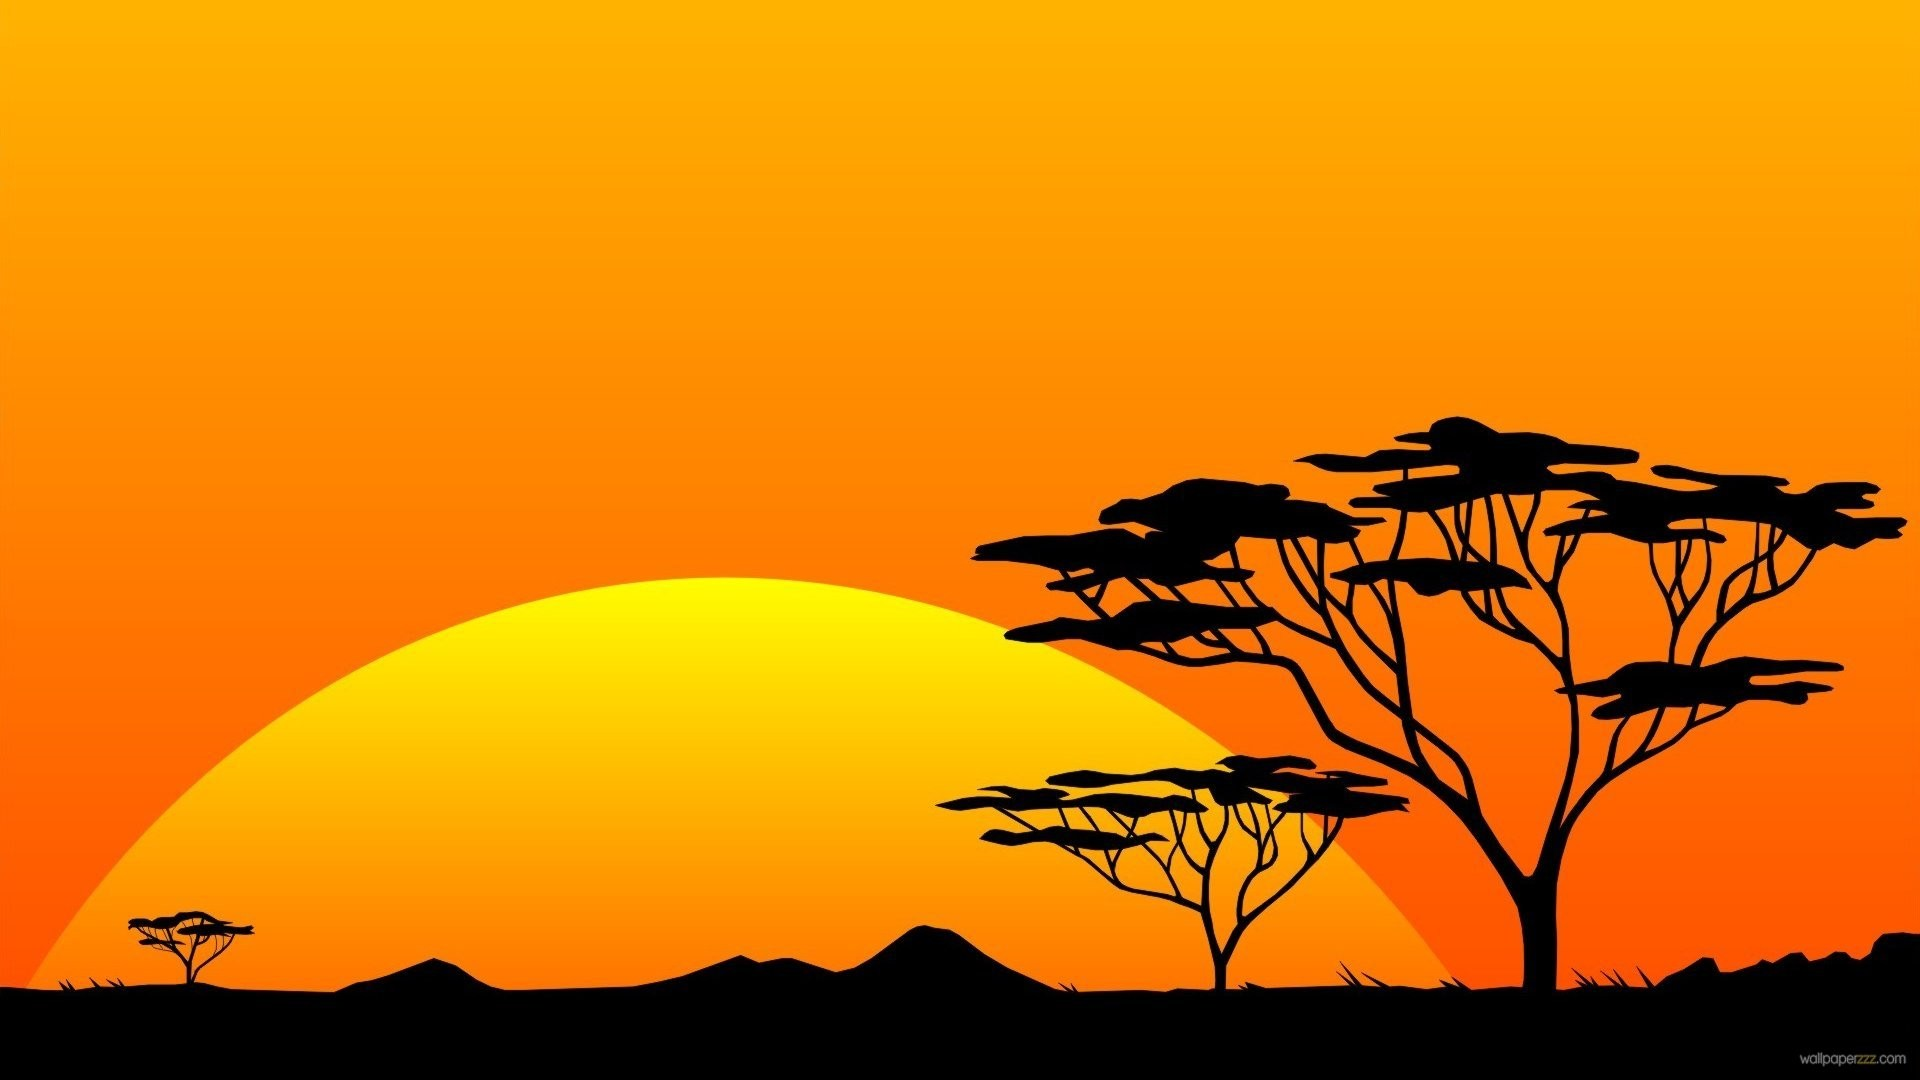 Scenery Safari Hires Sun Sunrise Africa wallpapers HD free – 171589